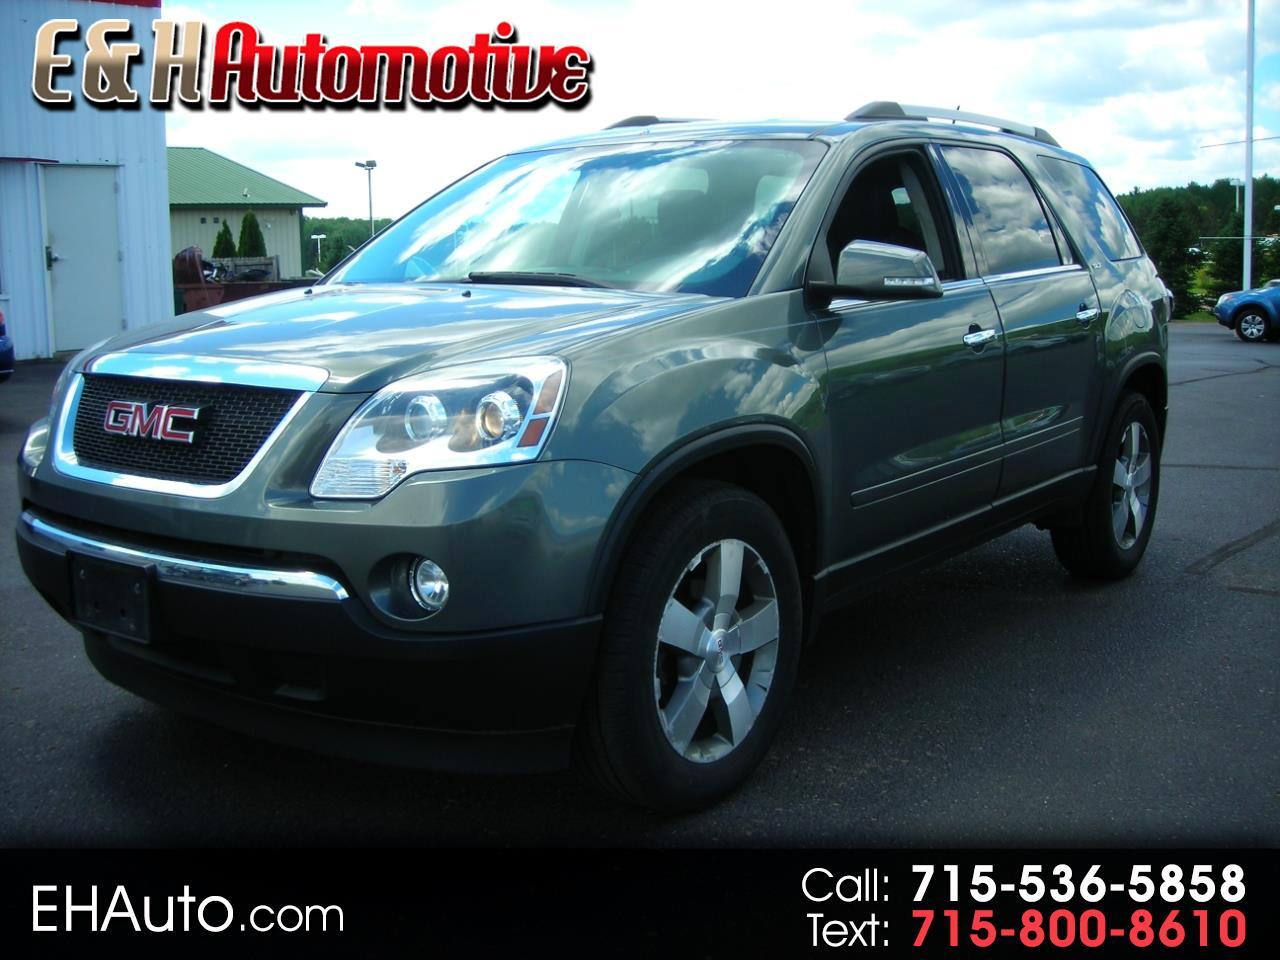 Used 2011 GMC Acadia for Sale in Merrill, WI 54452 E & H